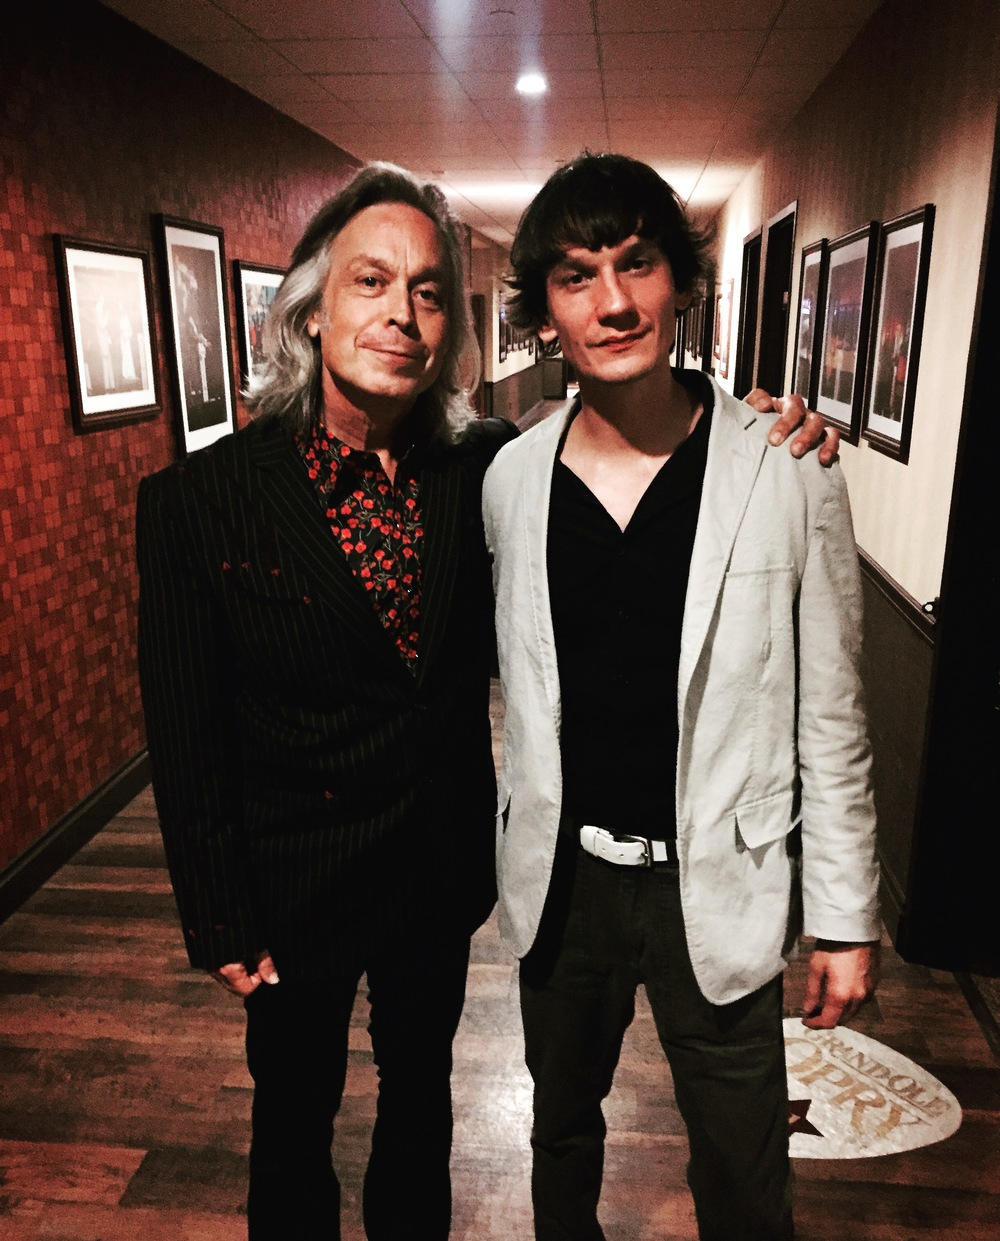 Jim and Cody Dickinson North MS Allstar backstage Opry 09_18_15.JPG